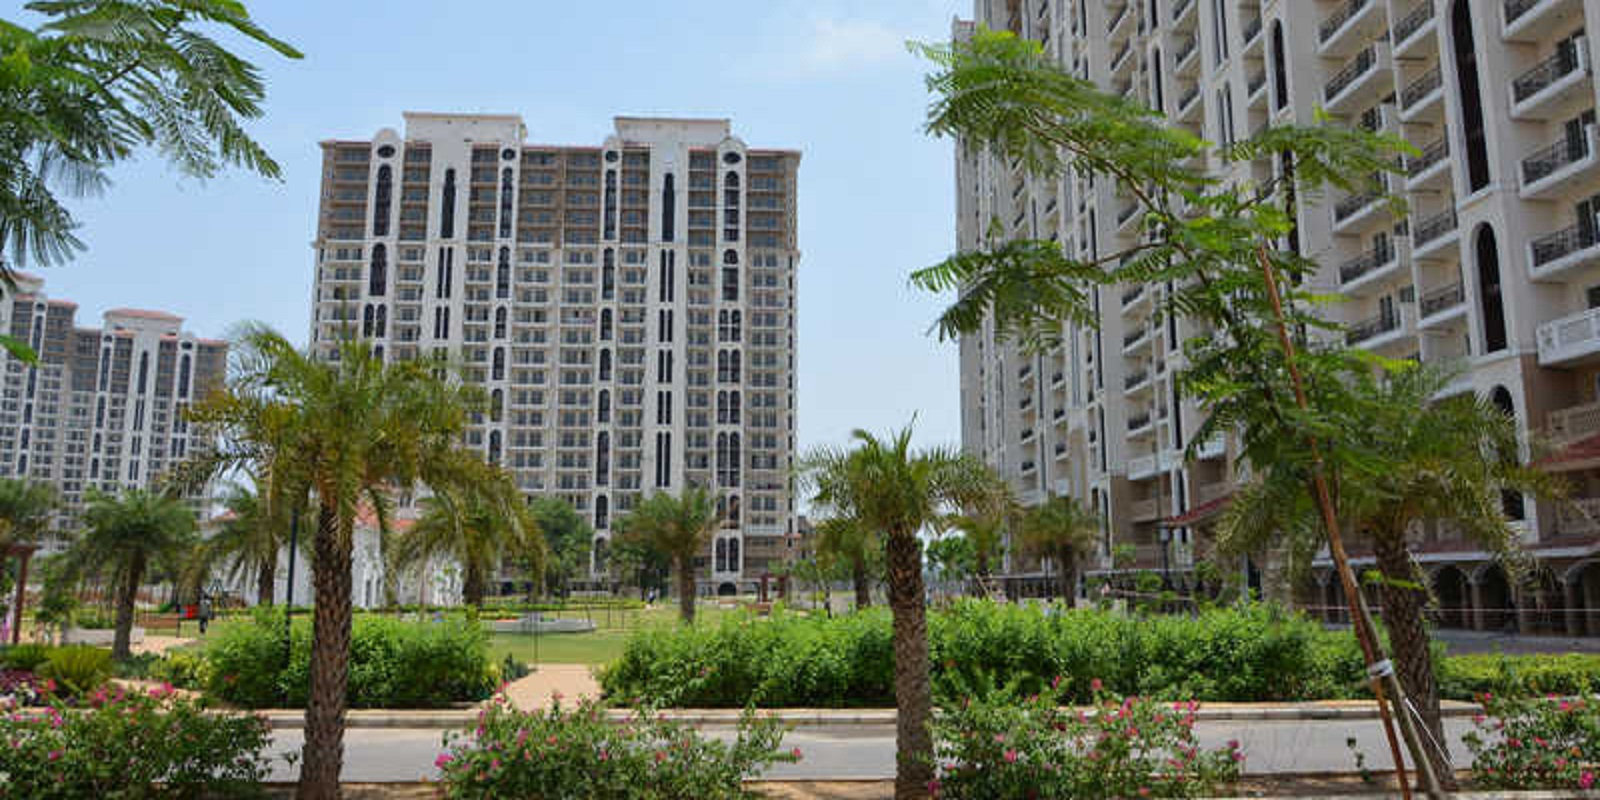 dlf new town heights i project project large image1